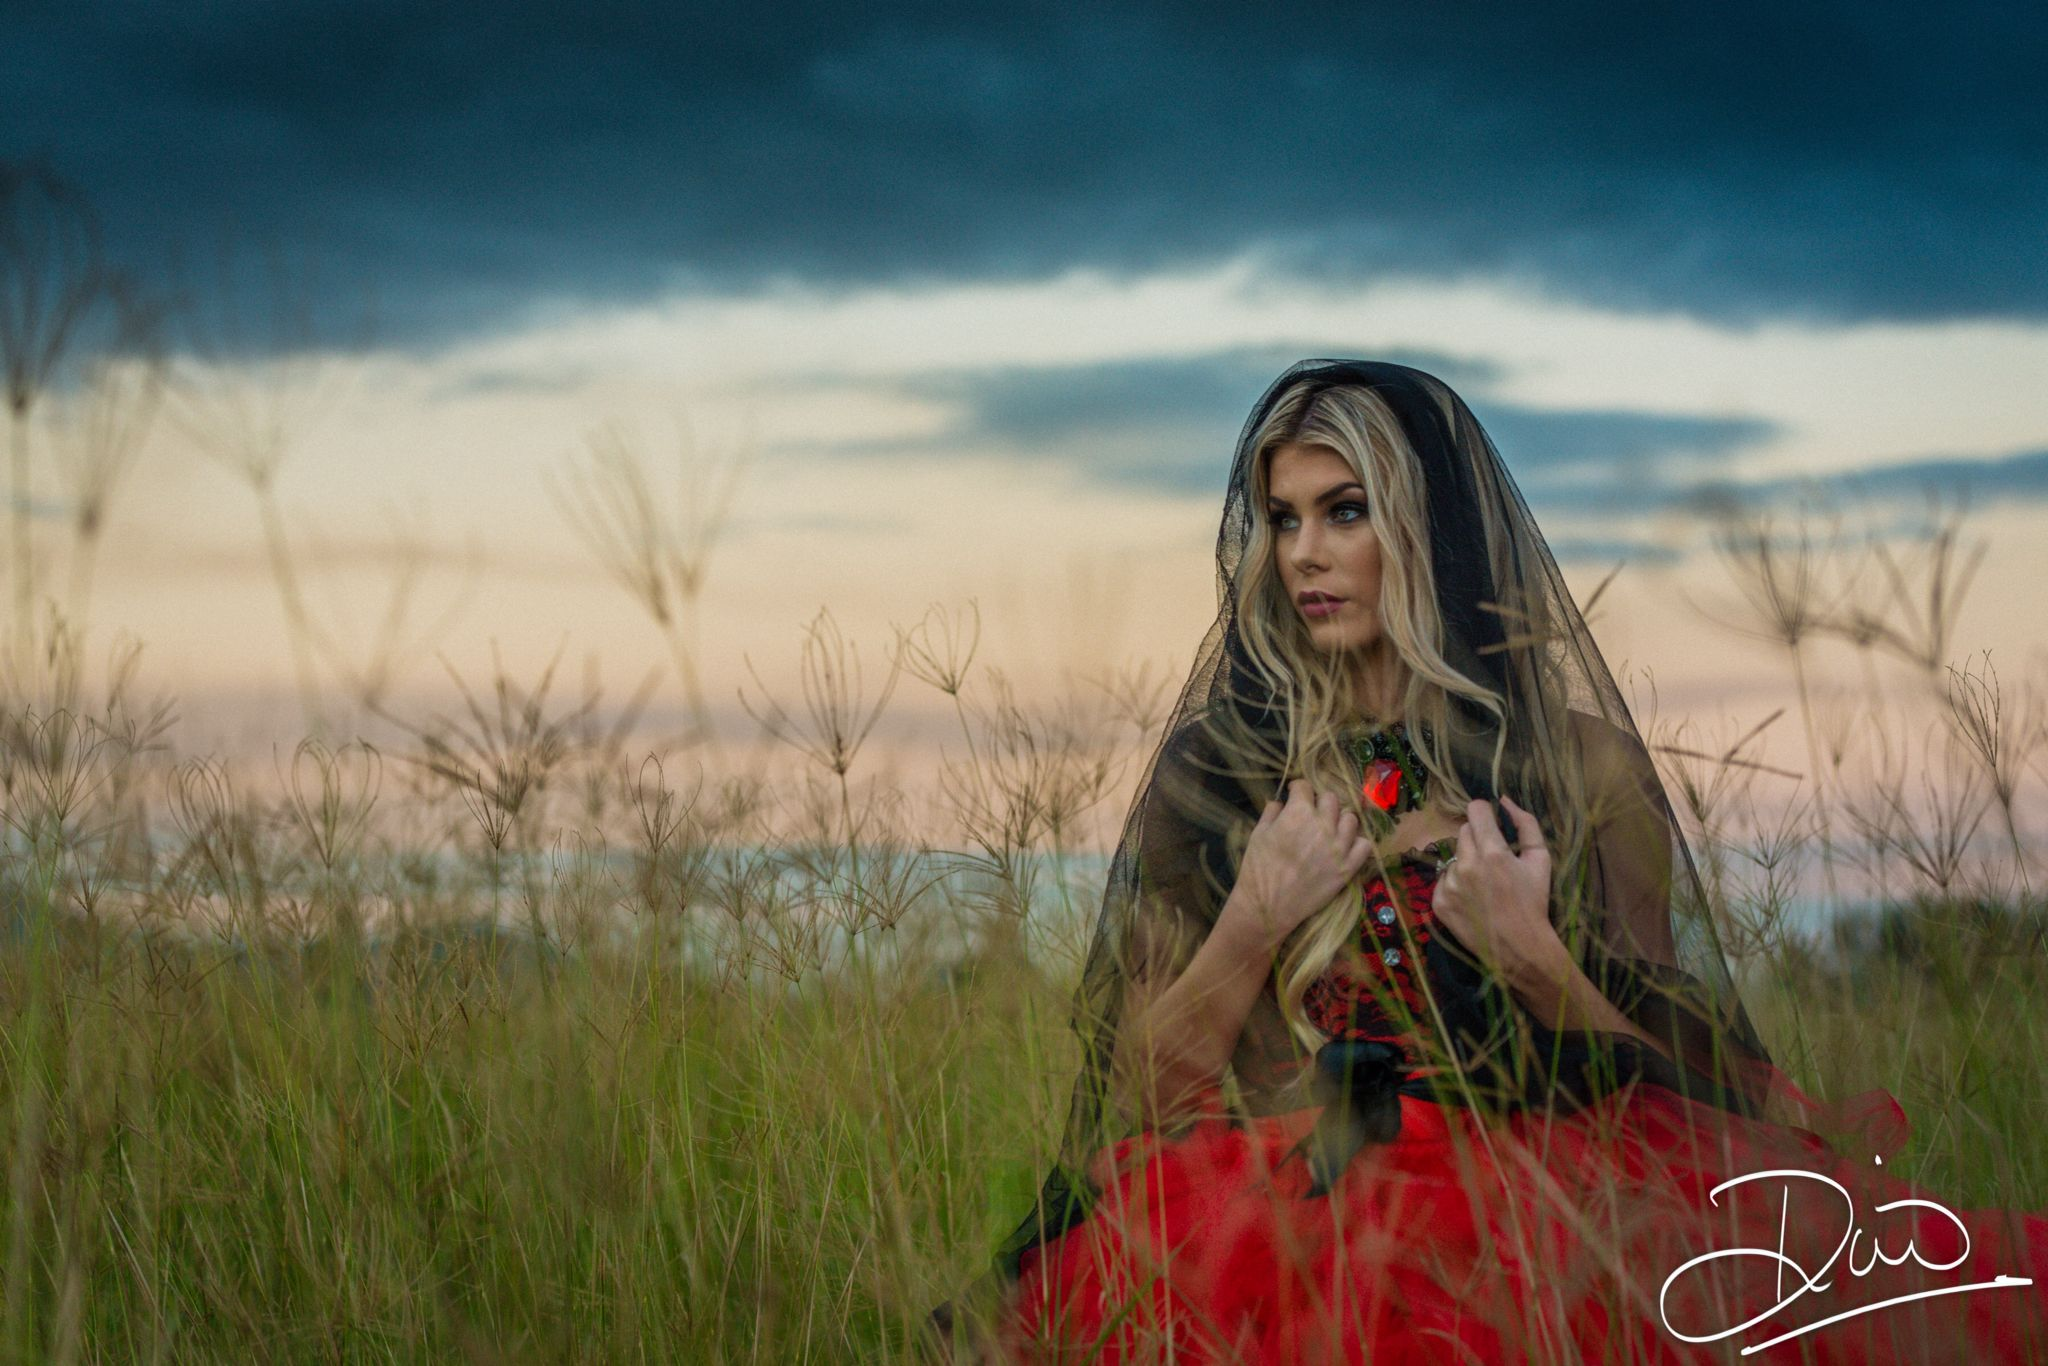 Images from my 2015 Gypsy shoots  Photography by Dean McEwan   @huzzah photography www.facebook.com/perhapsicould